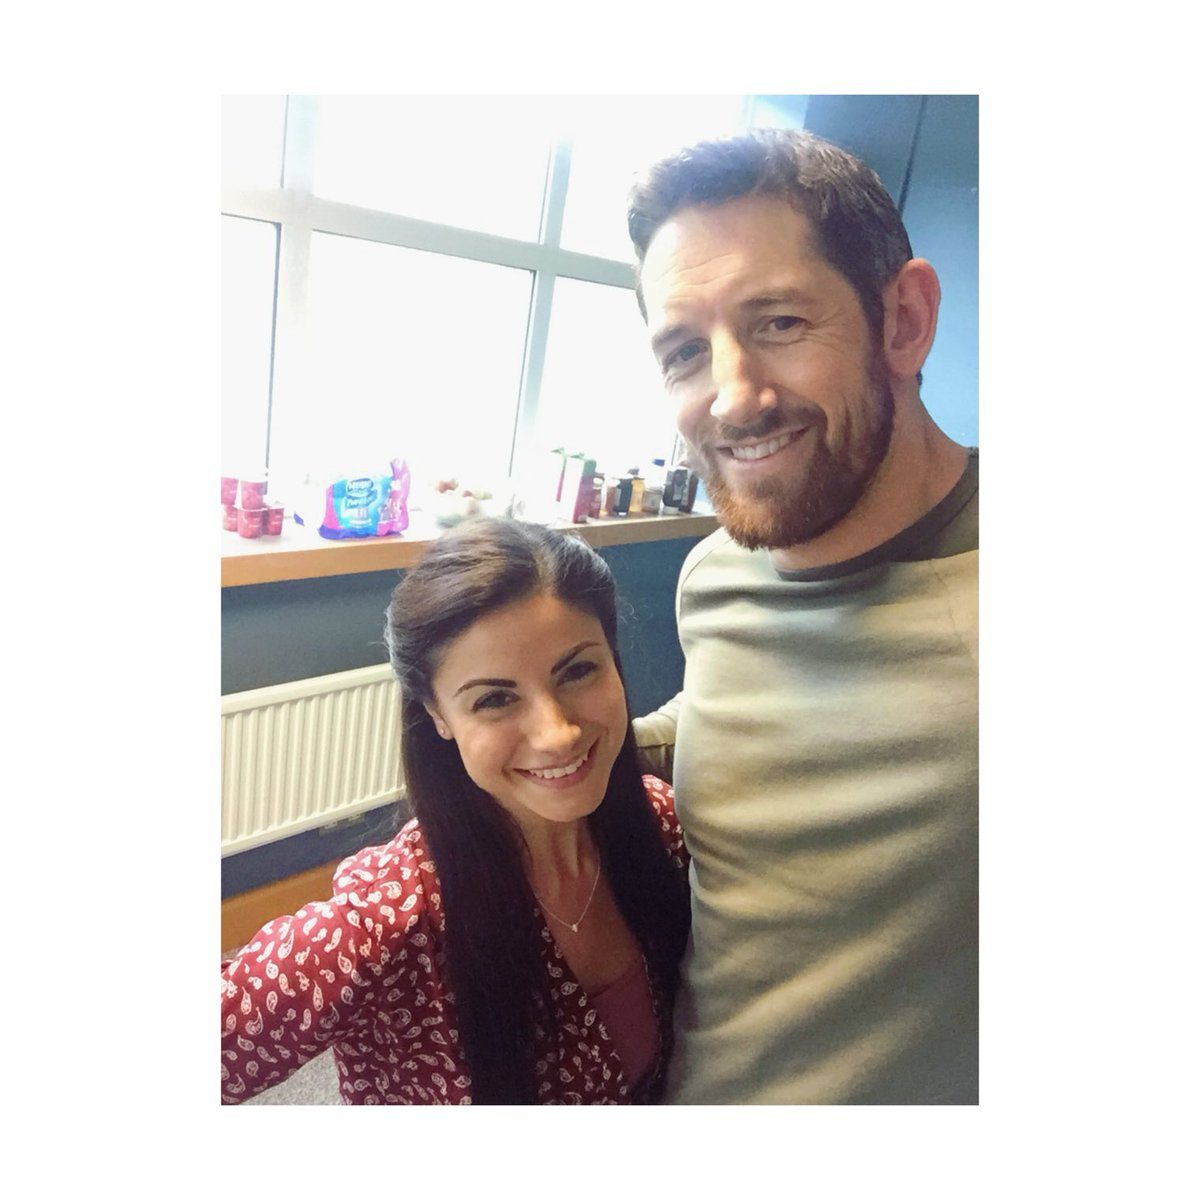 With the lovely @StuBennett @EvoFilmsUK day 1 on @vengeancefilmuk finished!! ☺️ https://t.co/AtiQalQ1QF